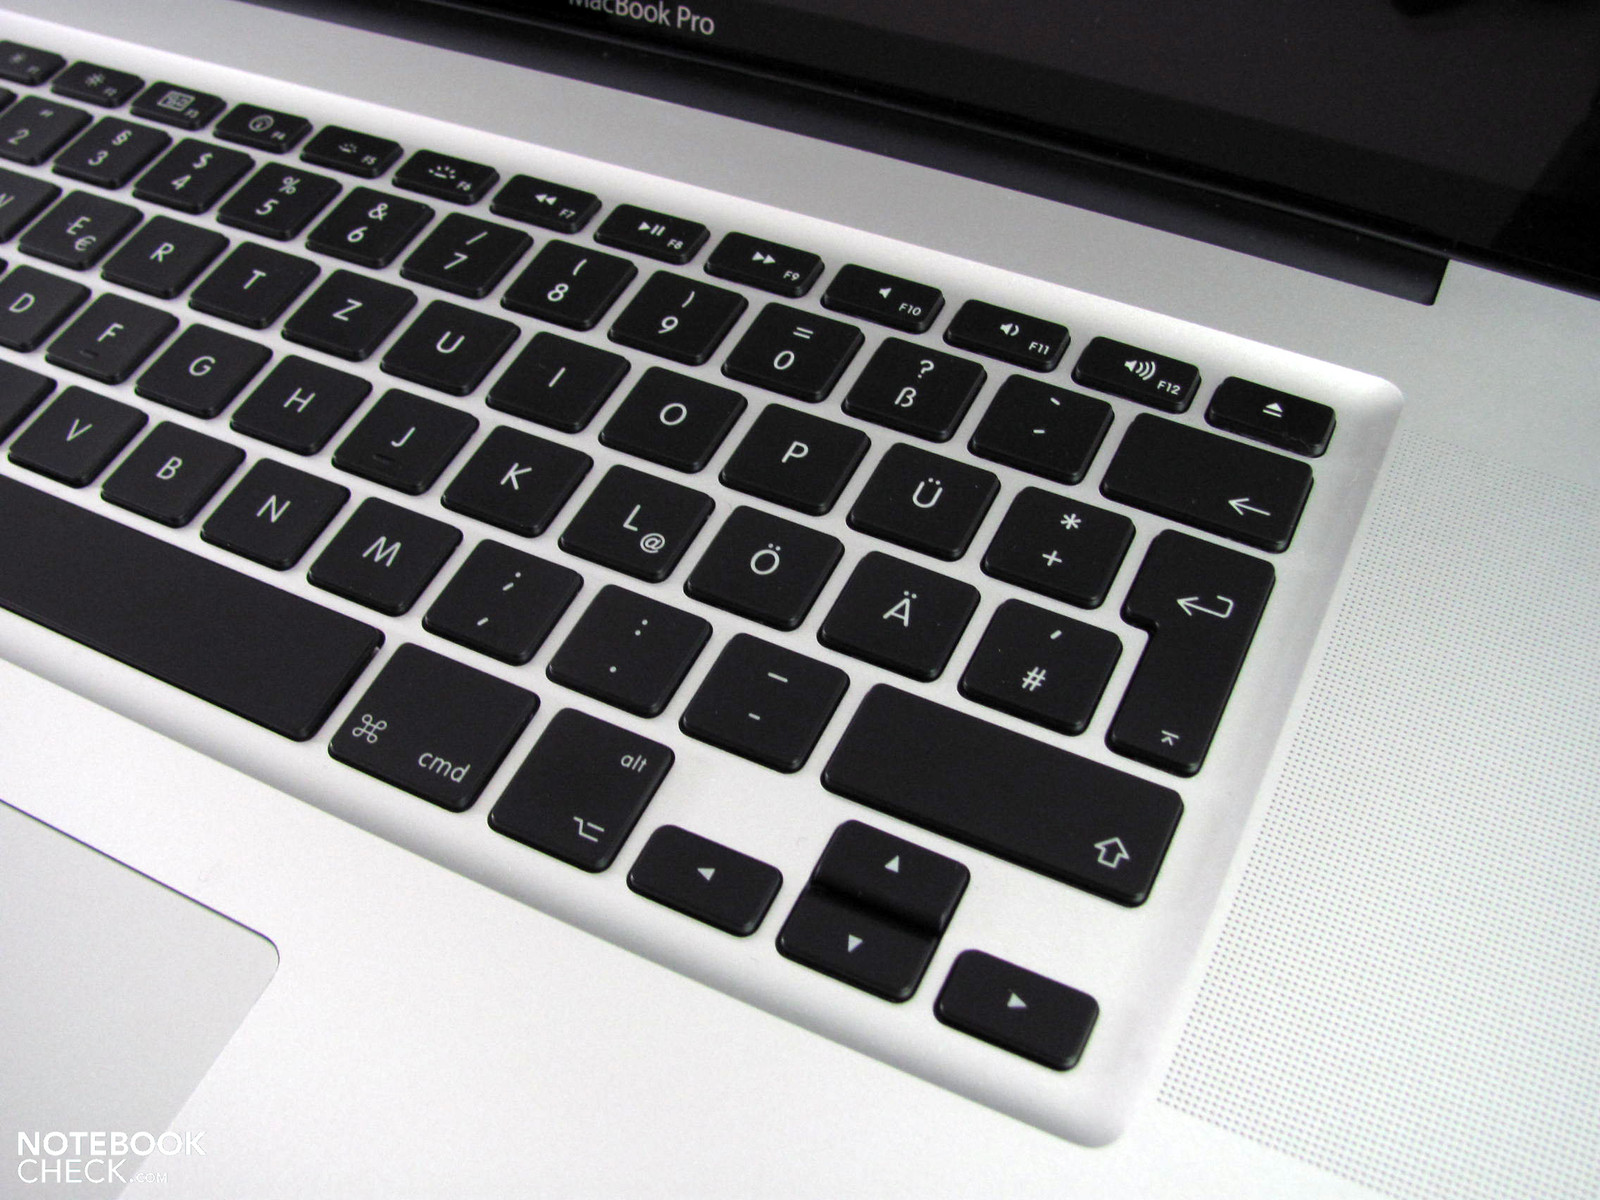 Review Apple Macbook Pro 17 Early 2011 2 2 Ghz Quad Core